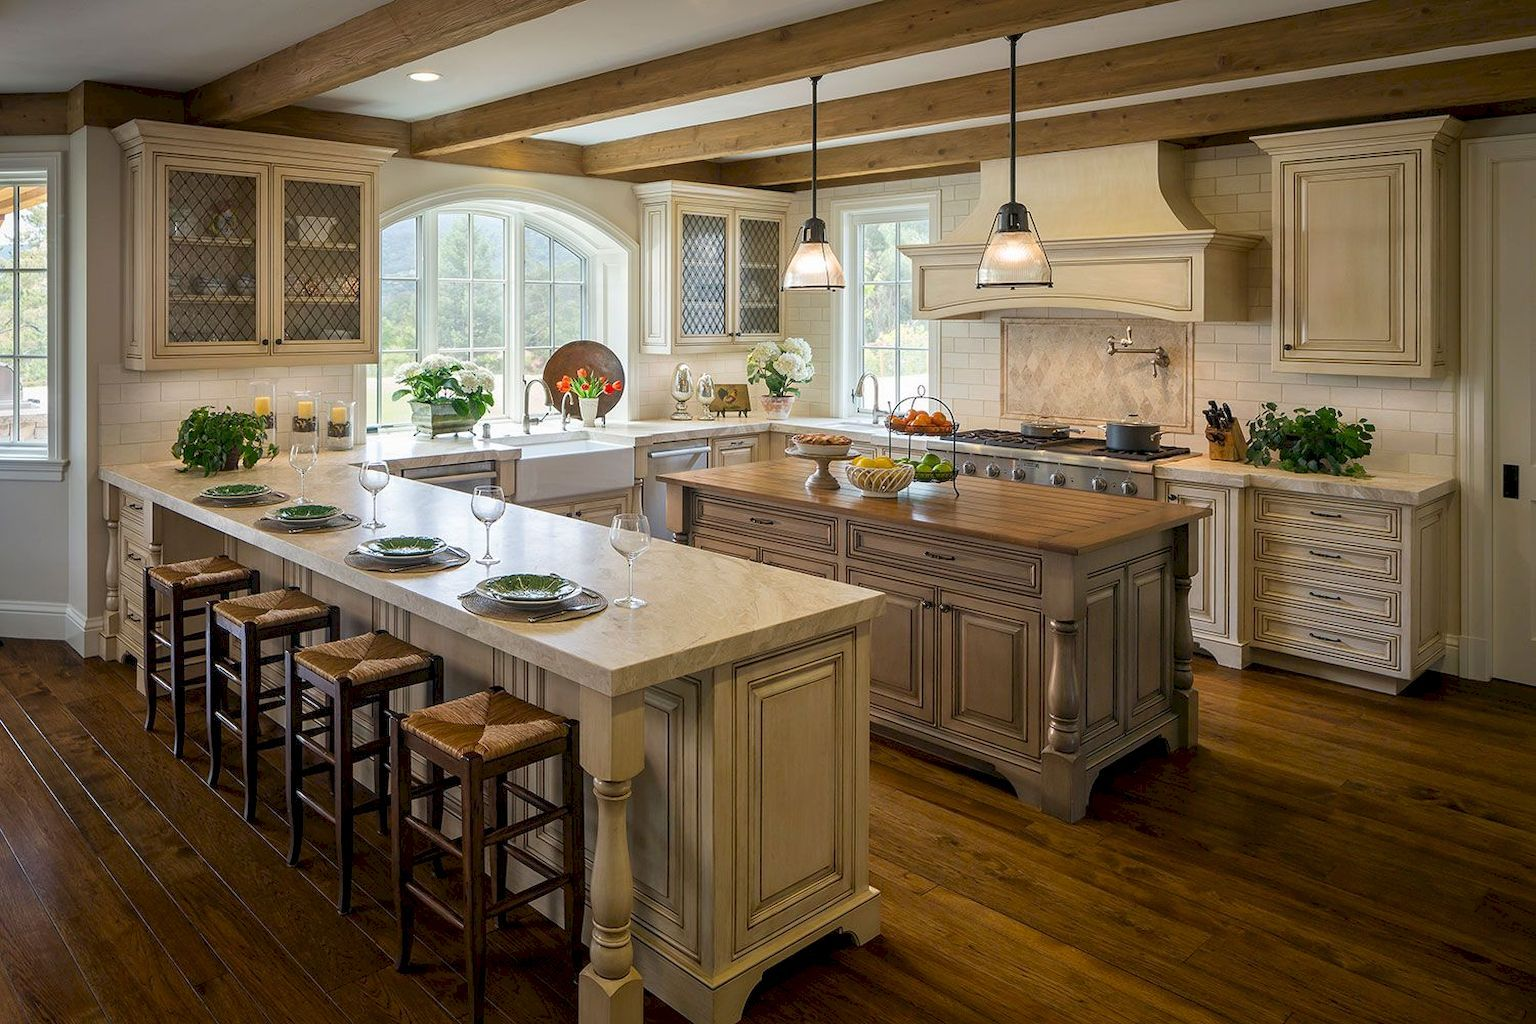 35 Beautiful French Country Kitchen Design and Decor Ideas ...